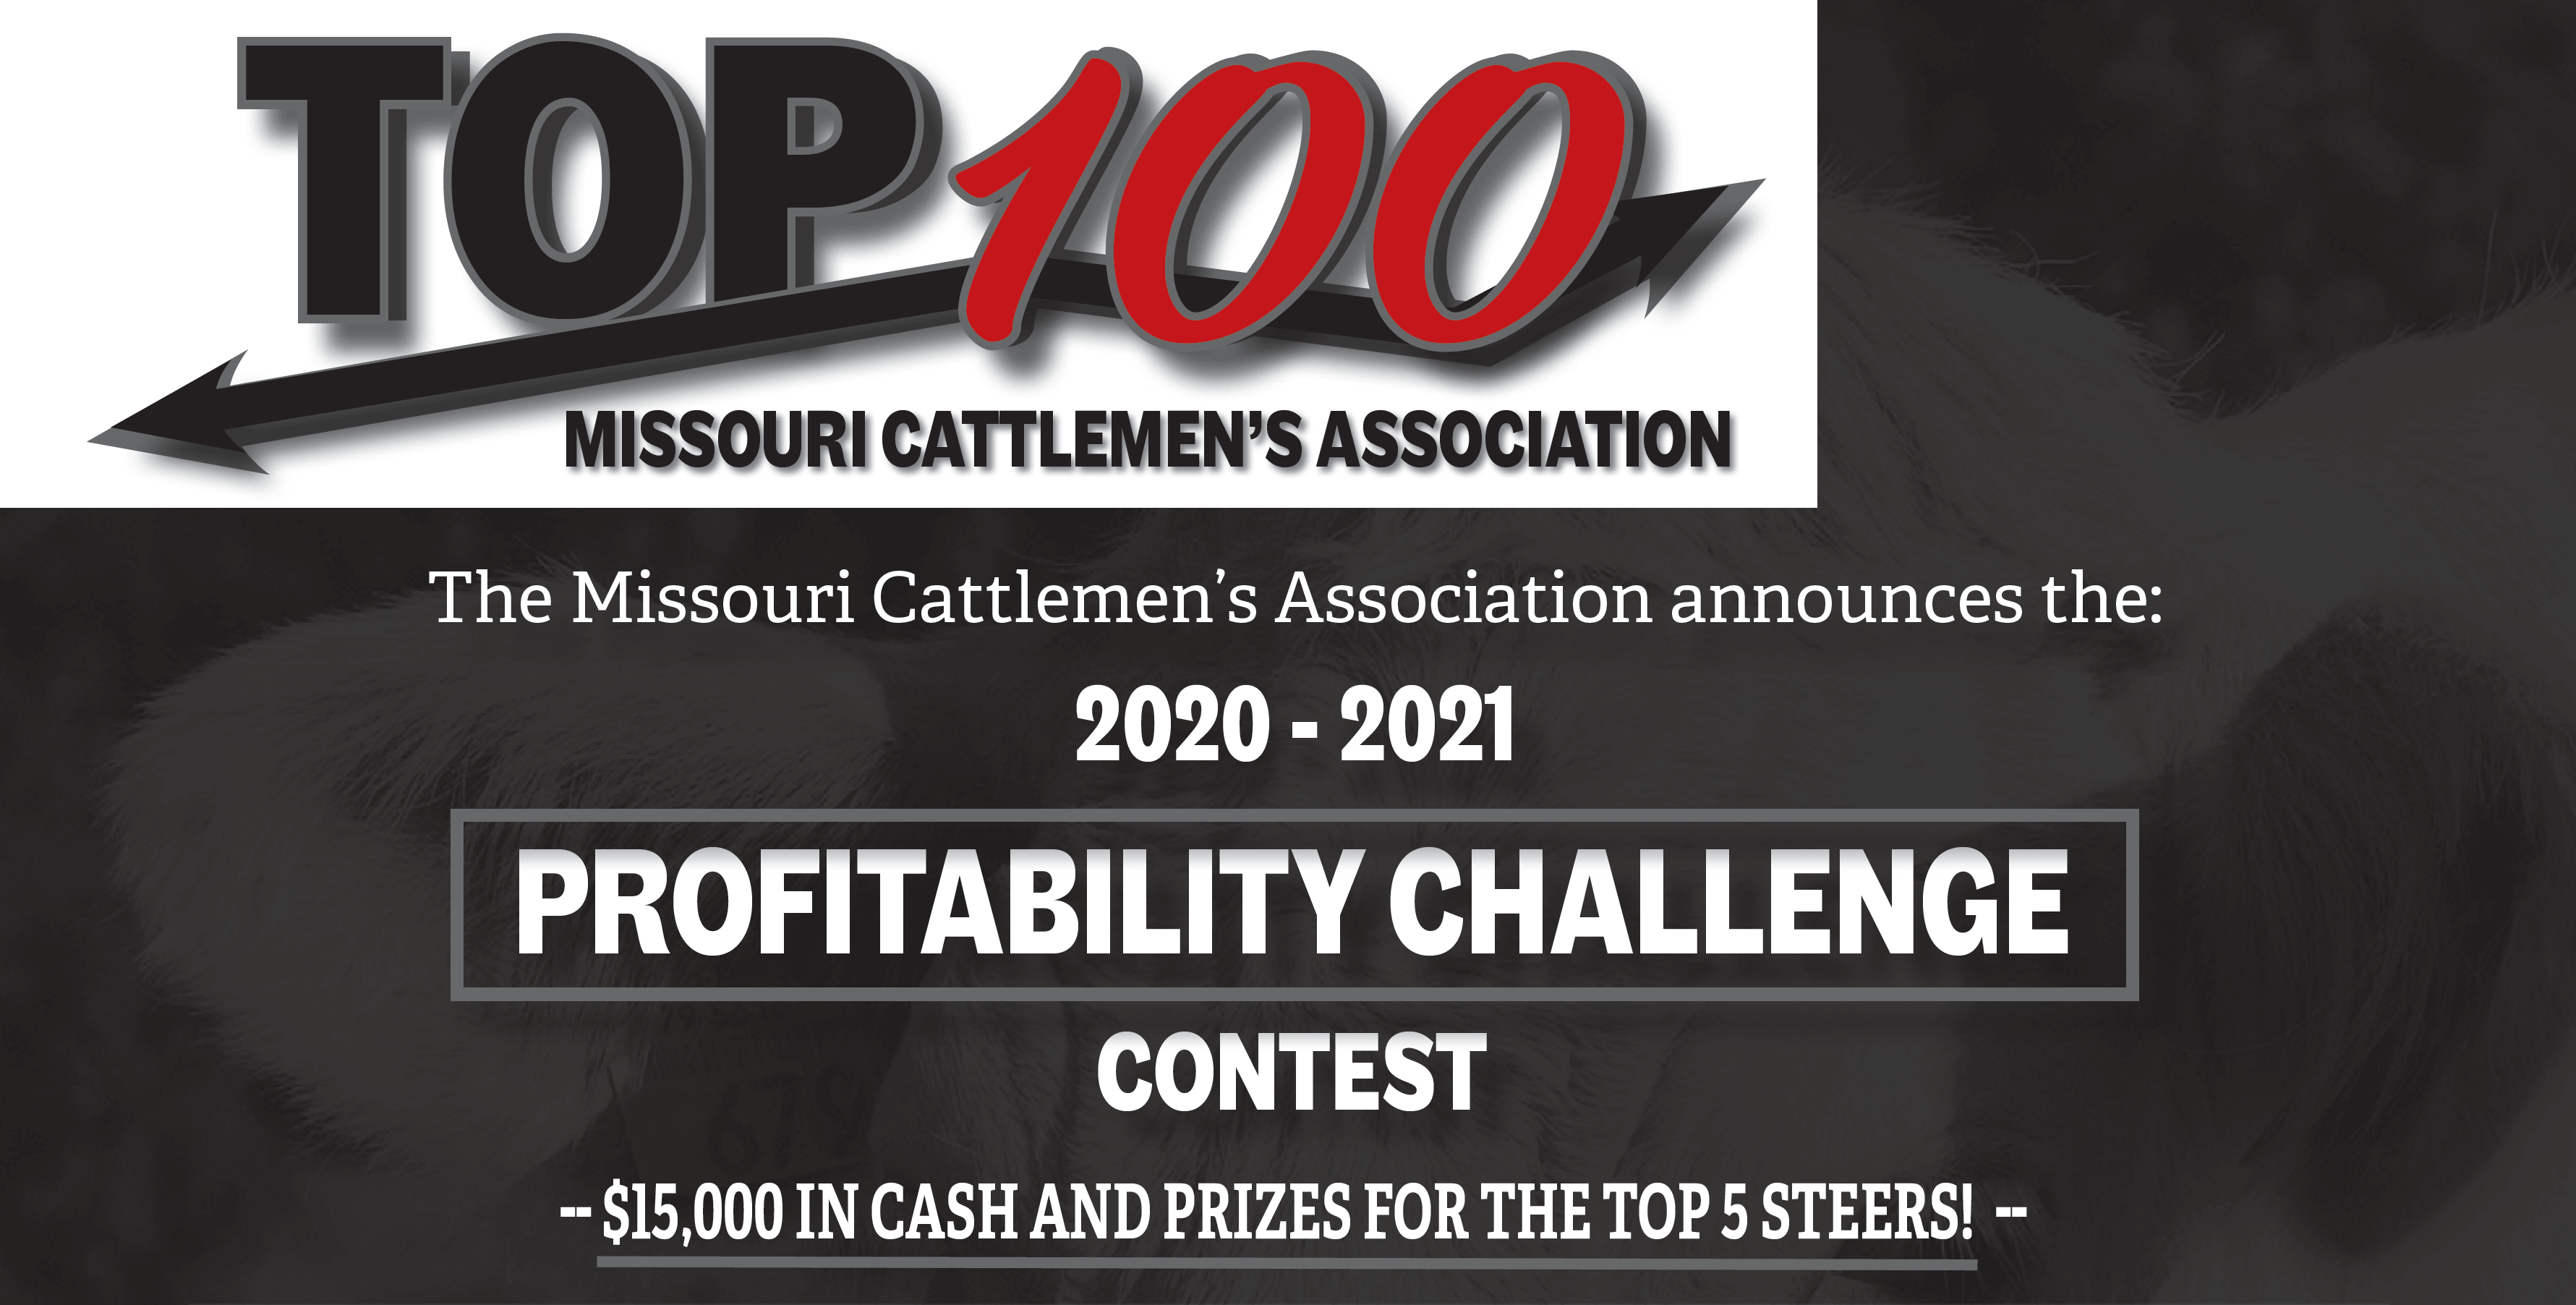 2020-2021 Missouri Cattlemen's Association Profitablity Challenge